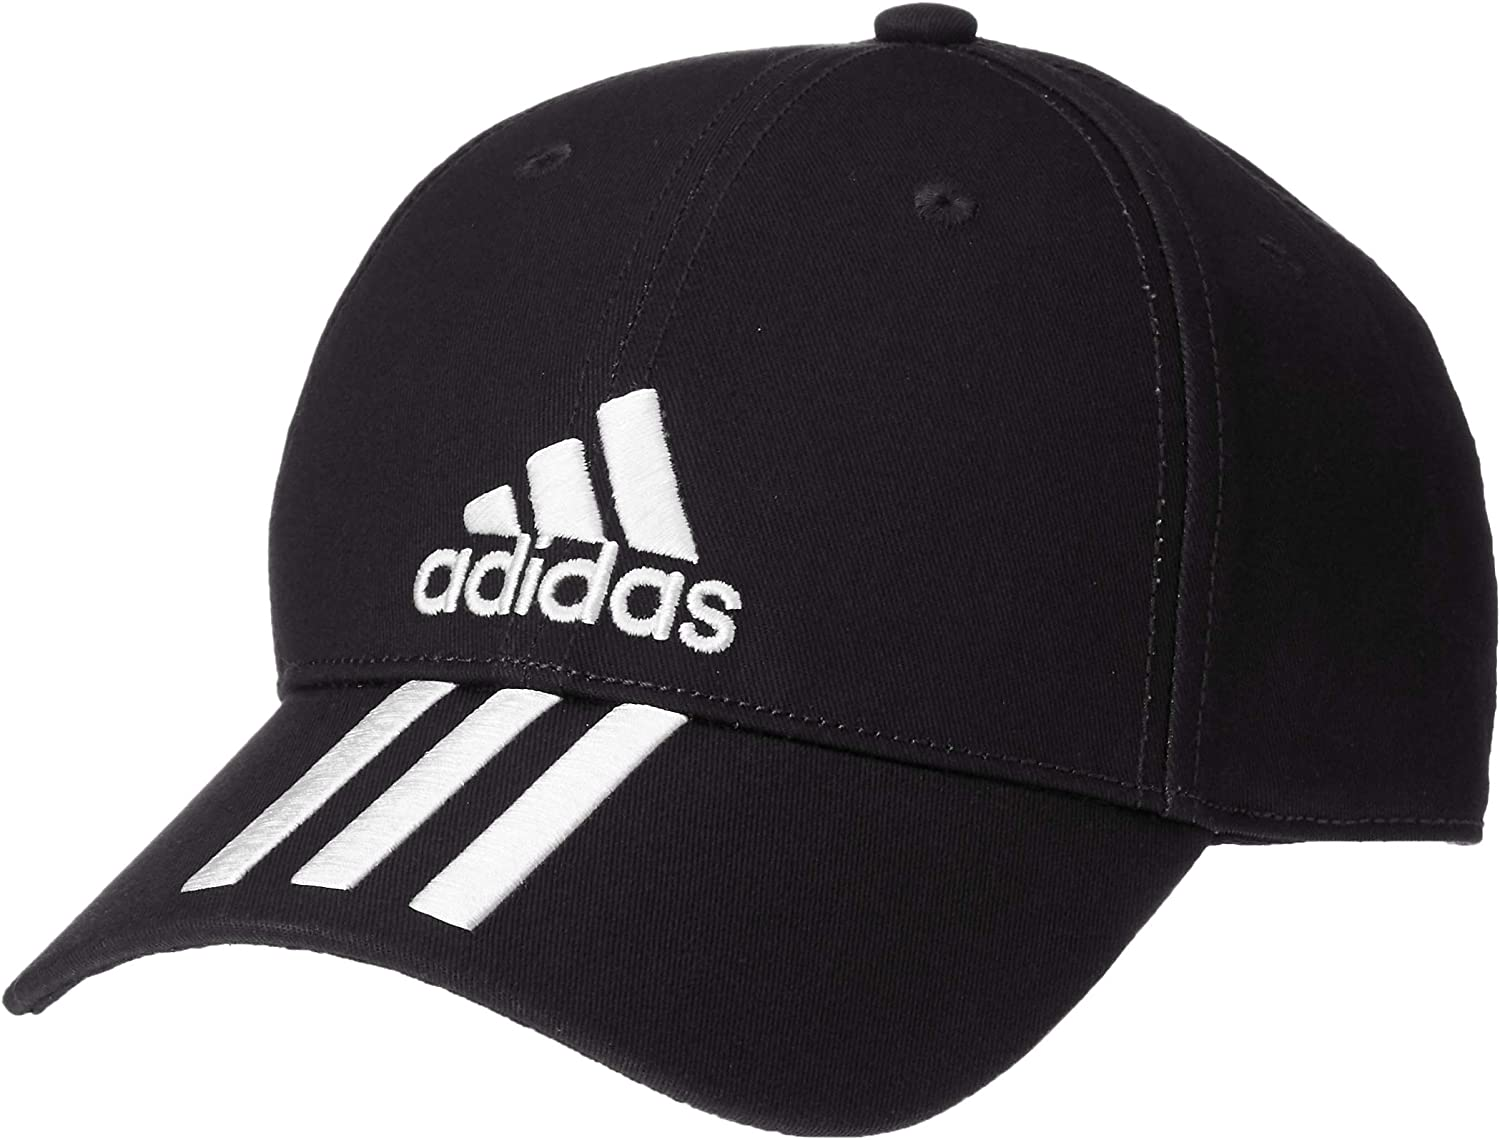 adidas 6p 3s Cap Cotto - Hat Unisex Adulto: Amazon.es: Ropa y ...